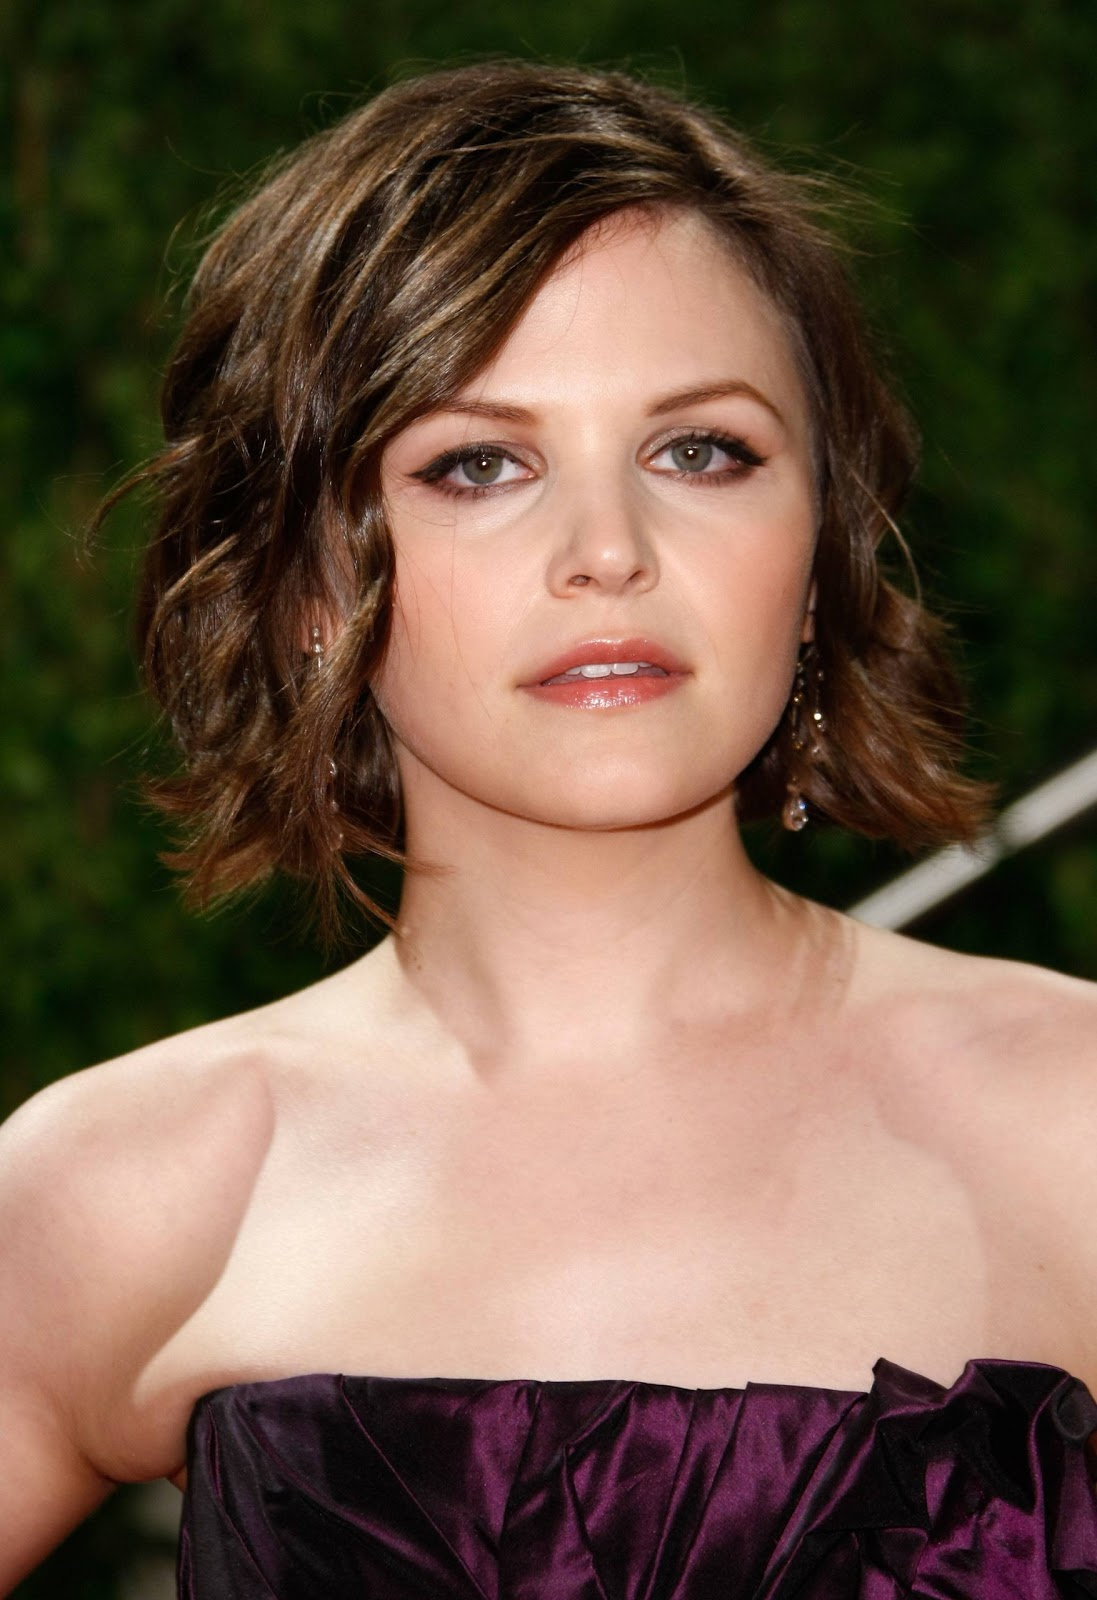 hairstyles popular 2012: Short Bob Hairstyle For Oval ...